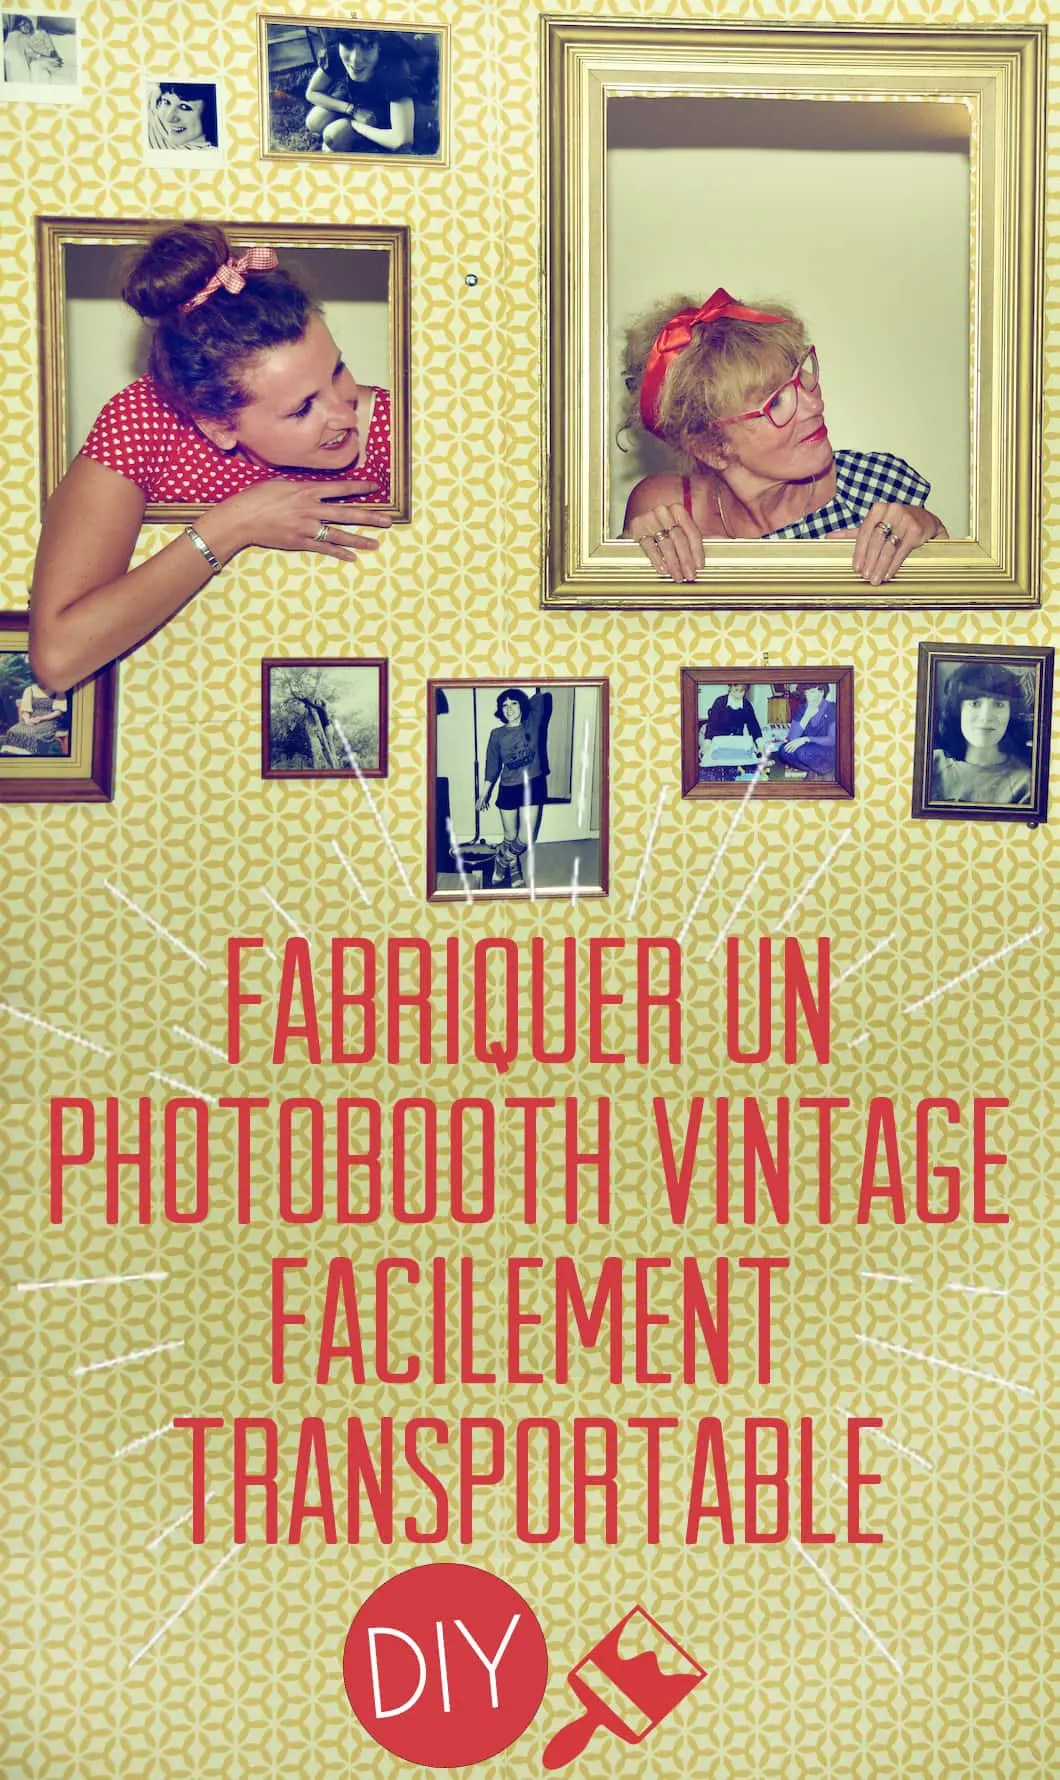 Photobooth Maison Diy Fabriquer Un Photobooth Vintage Facilement Transportable